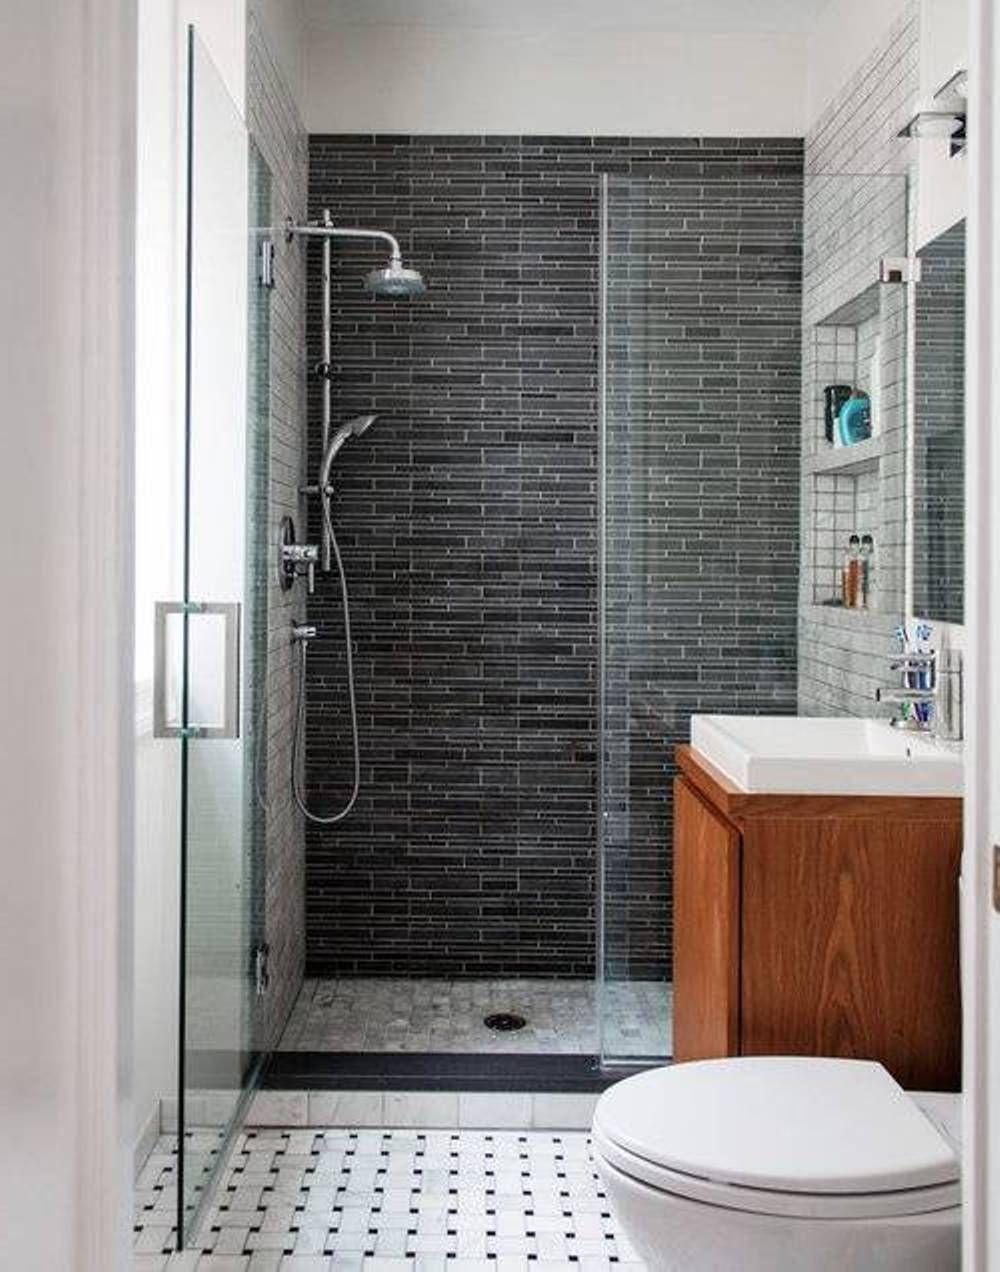 Bathroom tiles designs for small spaces - 1000 Images About Small Bathrooms On Pinterest Singapore Bathroom And Interior Design Singapore